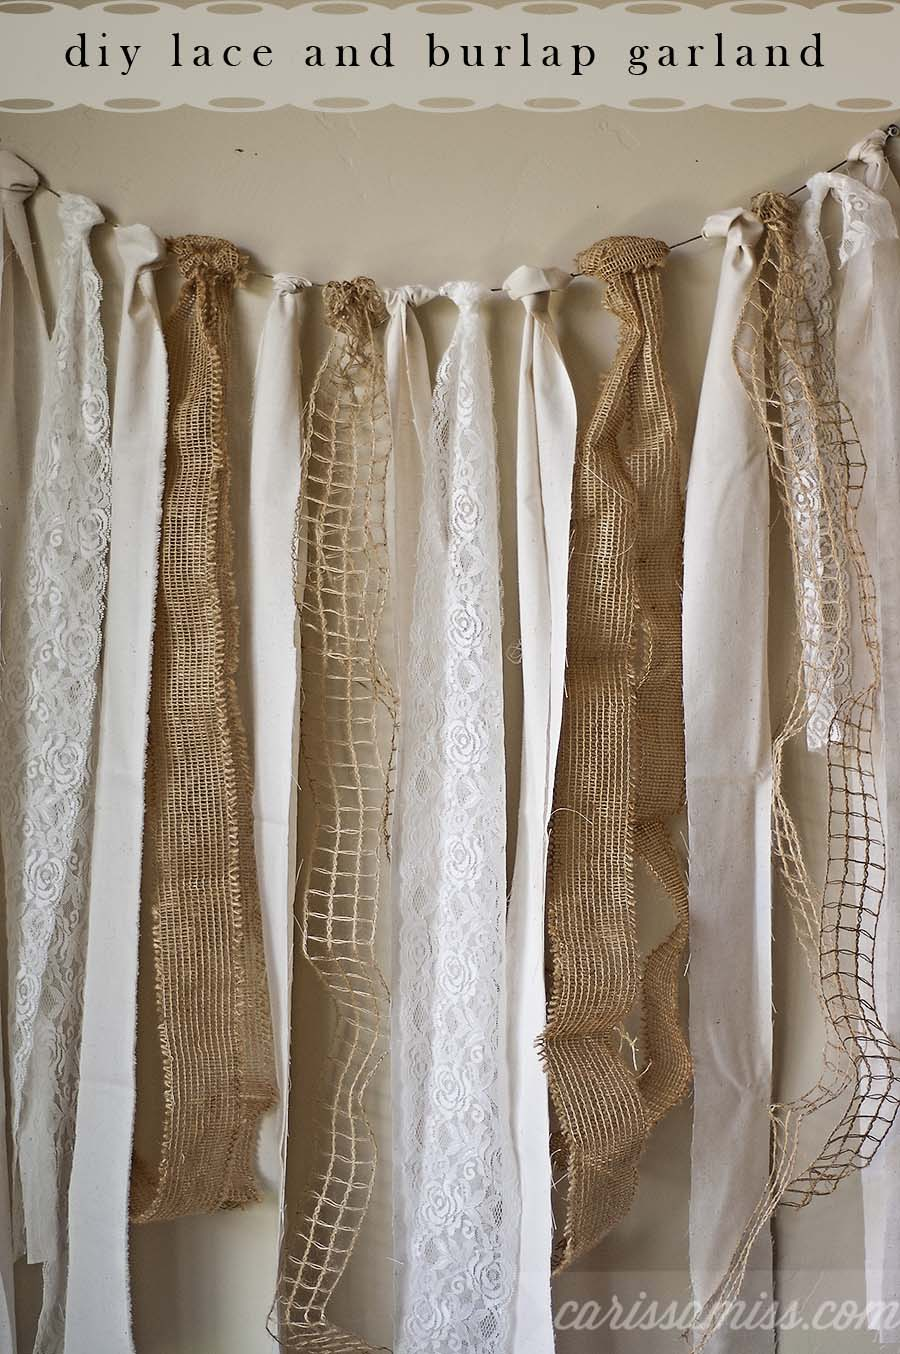 Rural Victorian Lace and Burlap Garland